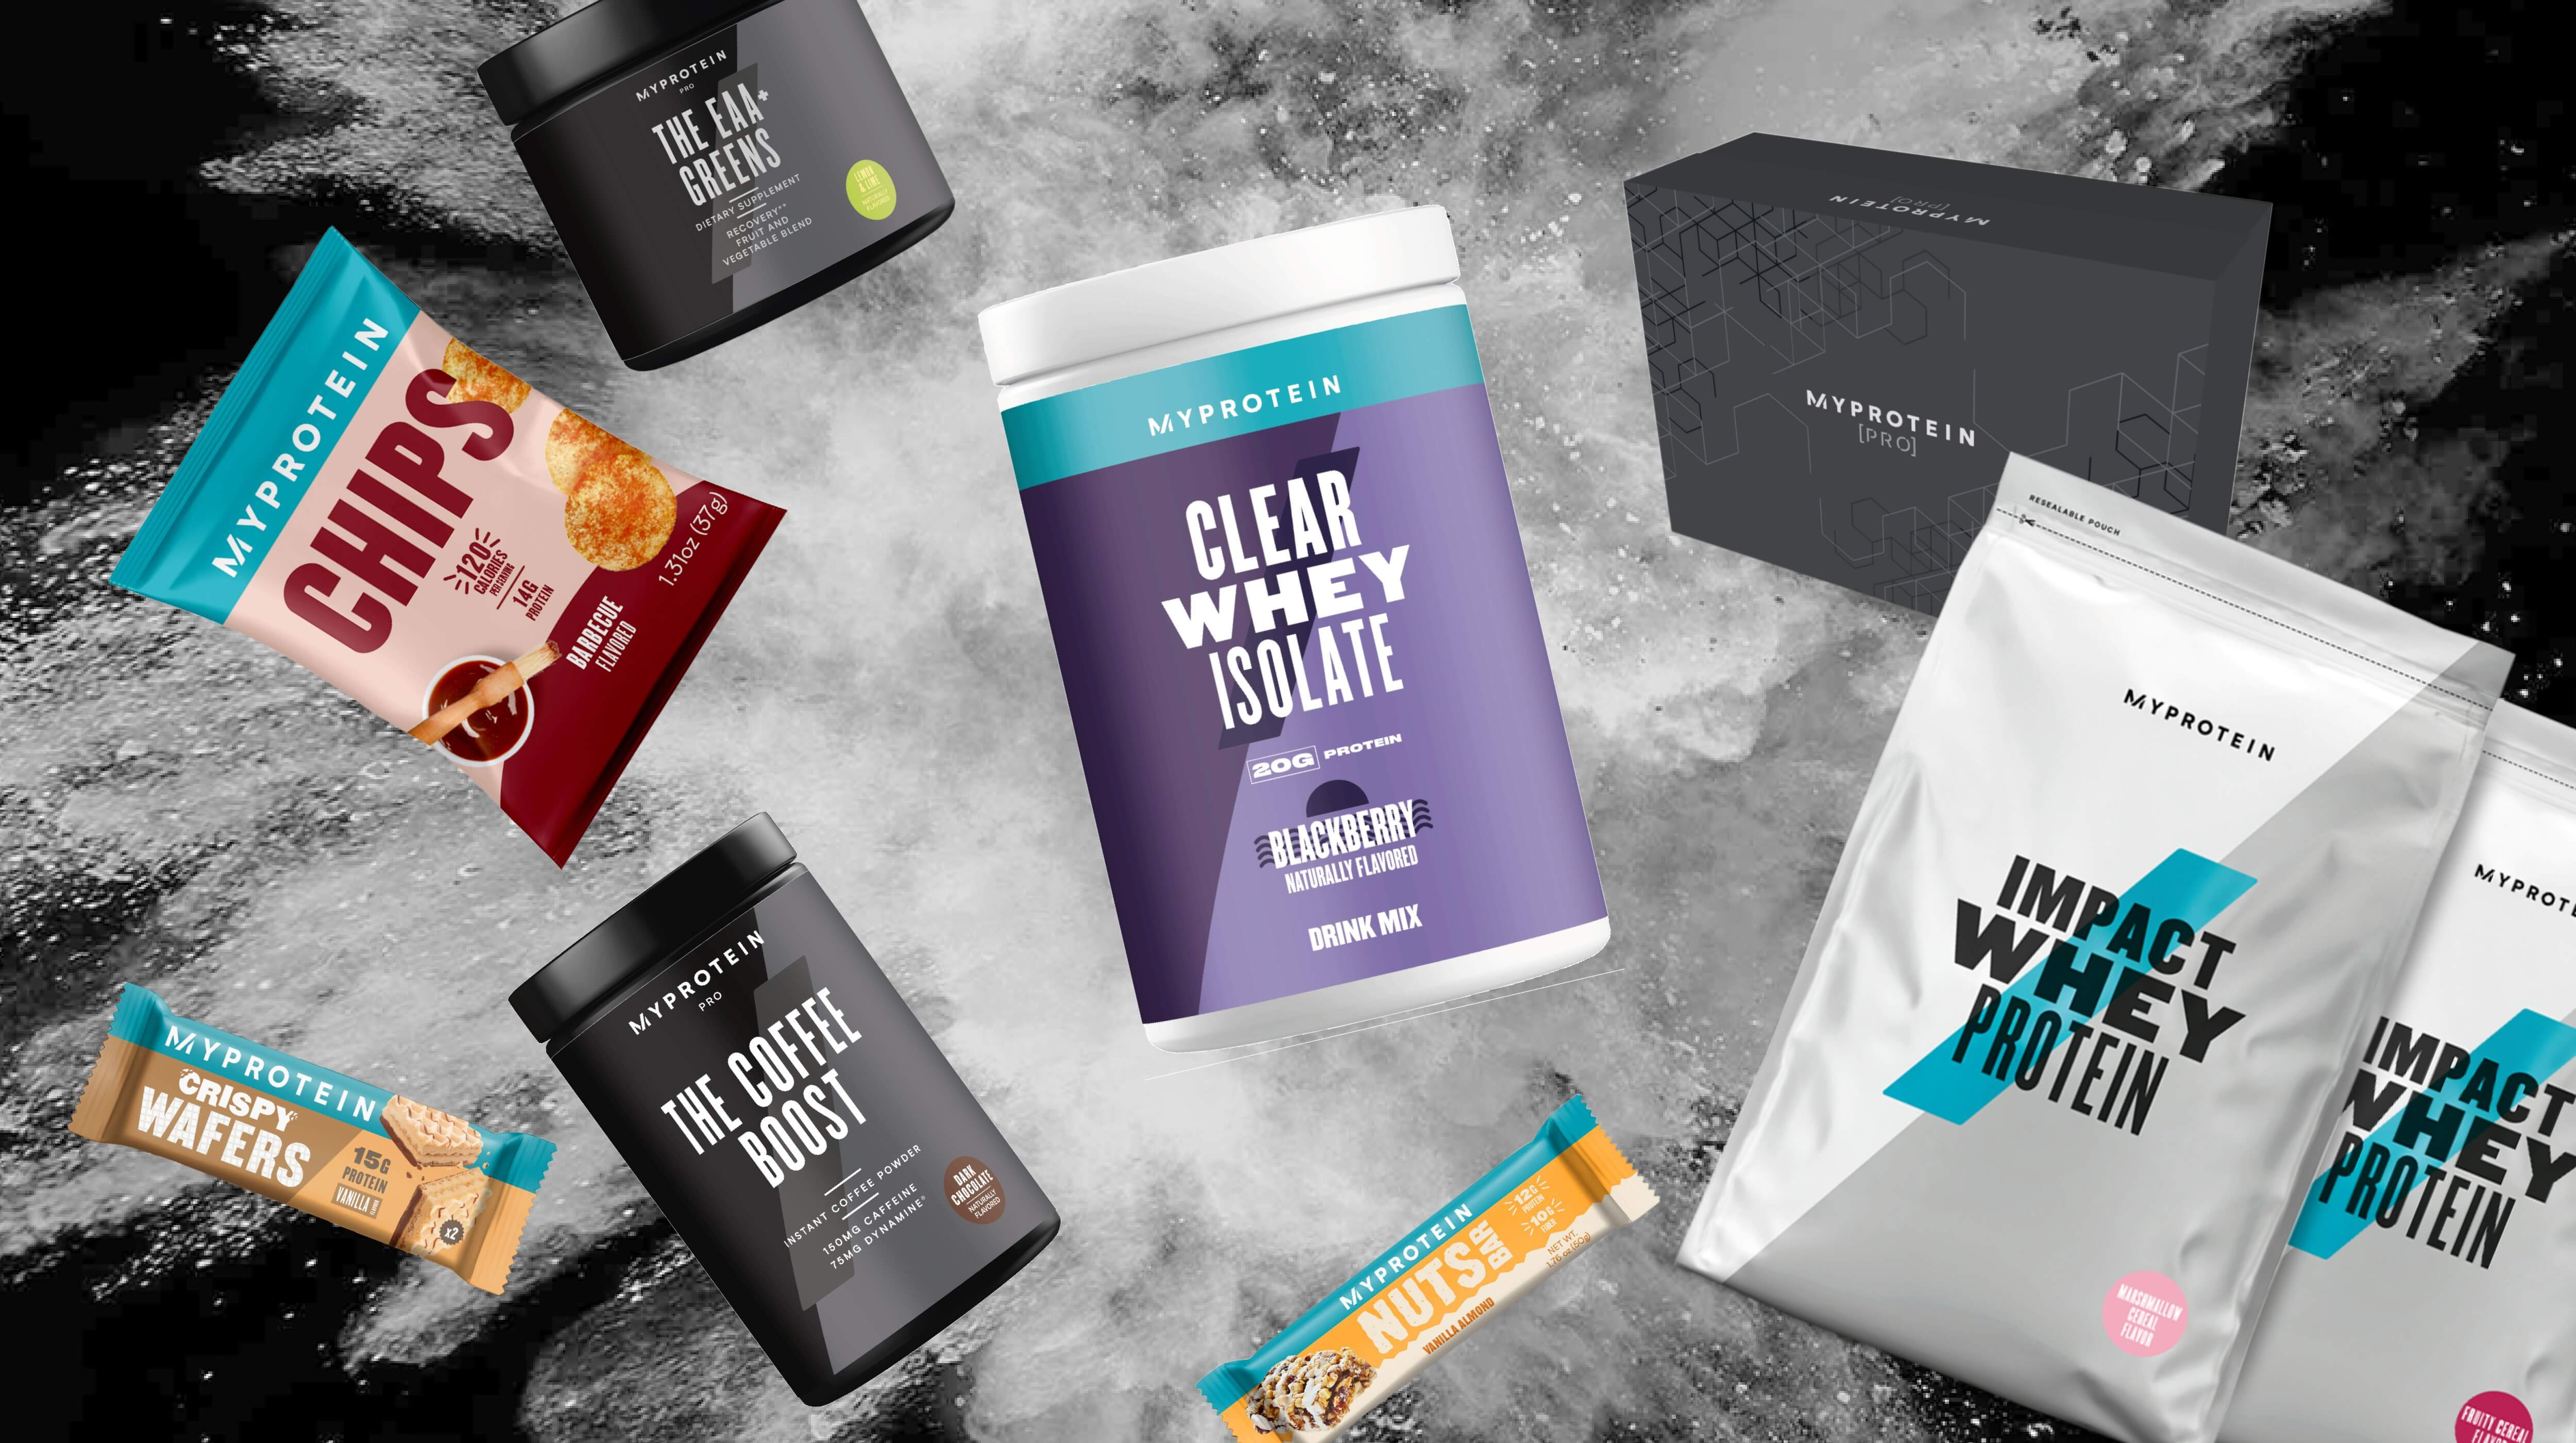 Here's What's New From Myprotein This Black Friday | Protein Bars, Protein Powders, and Superfoods